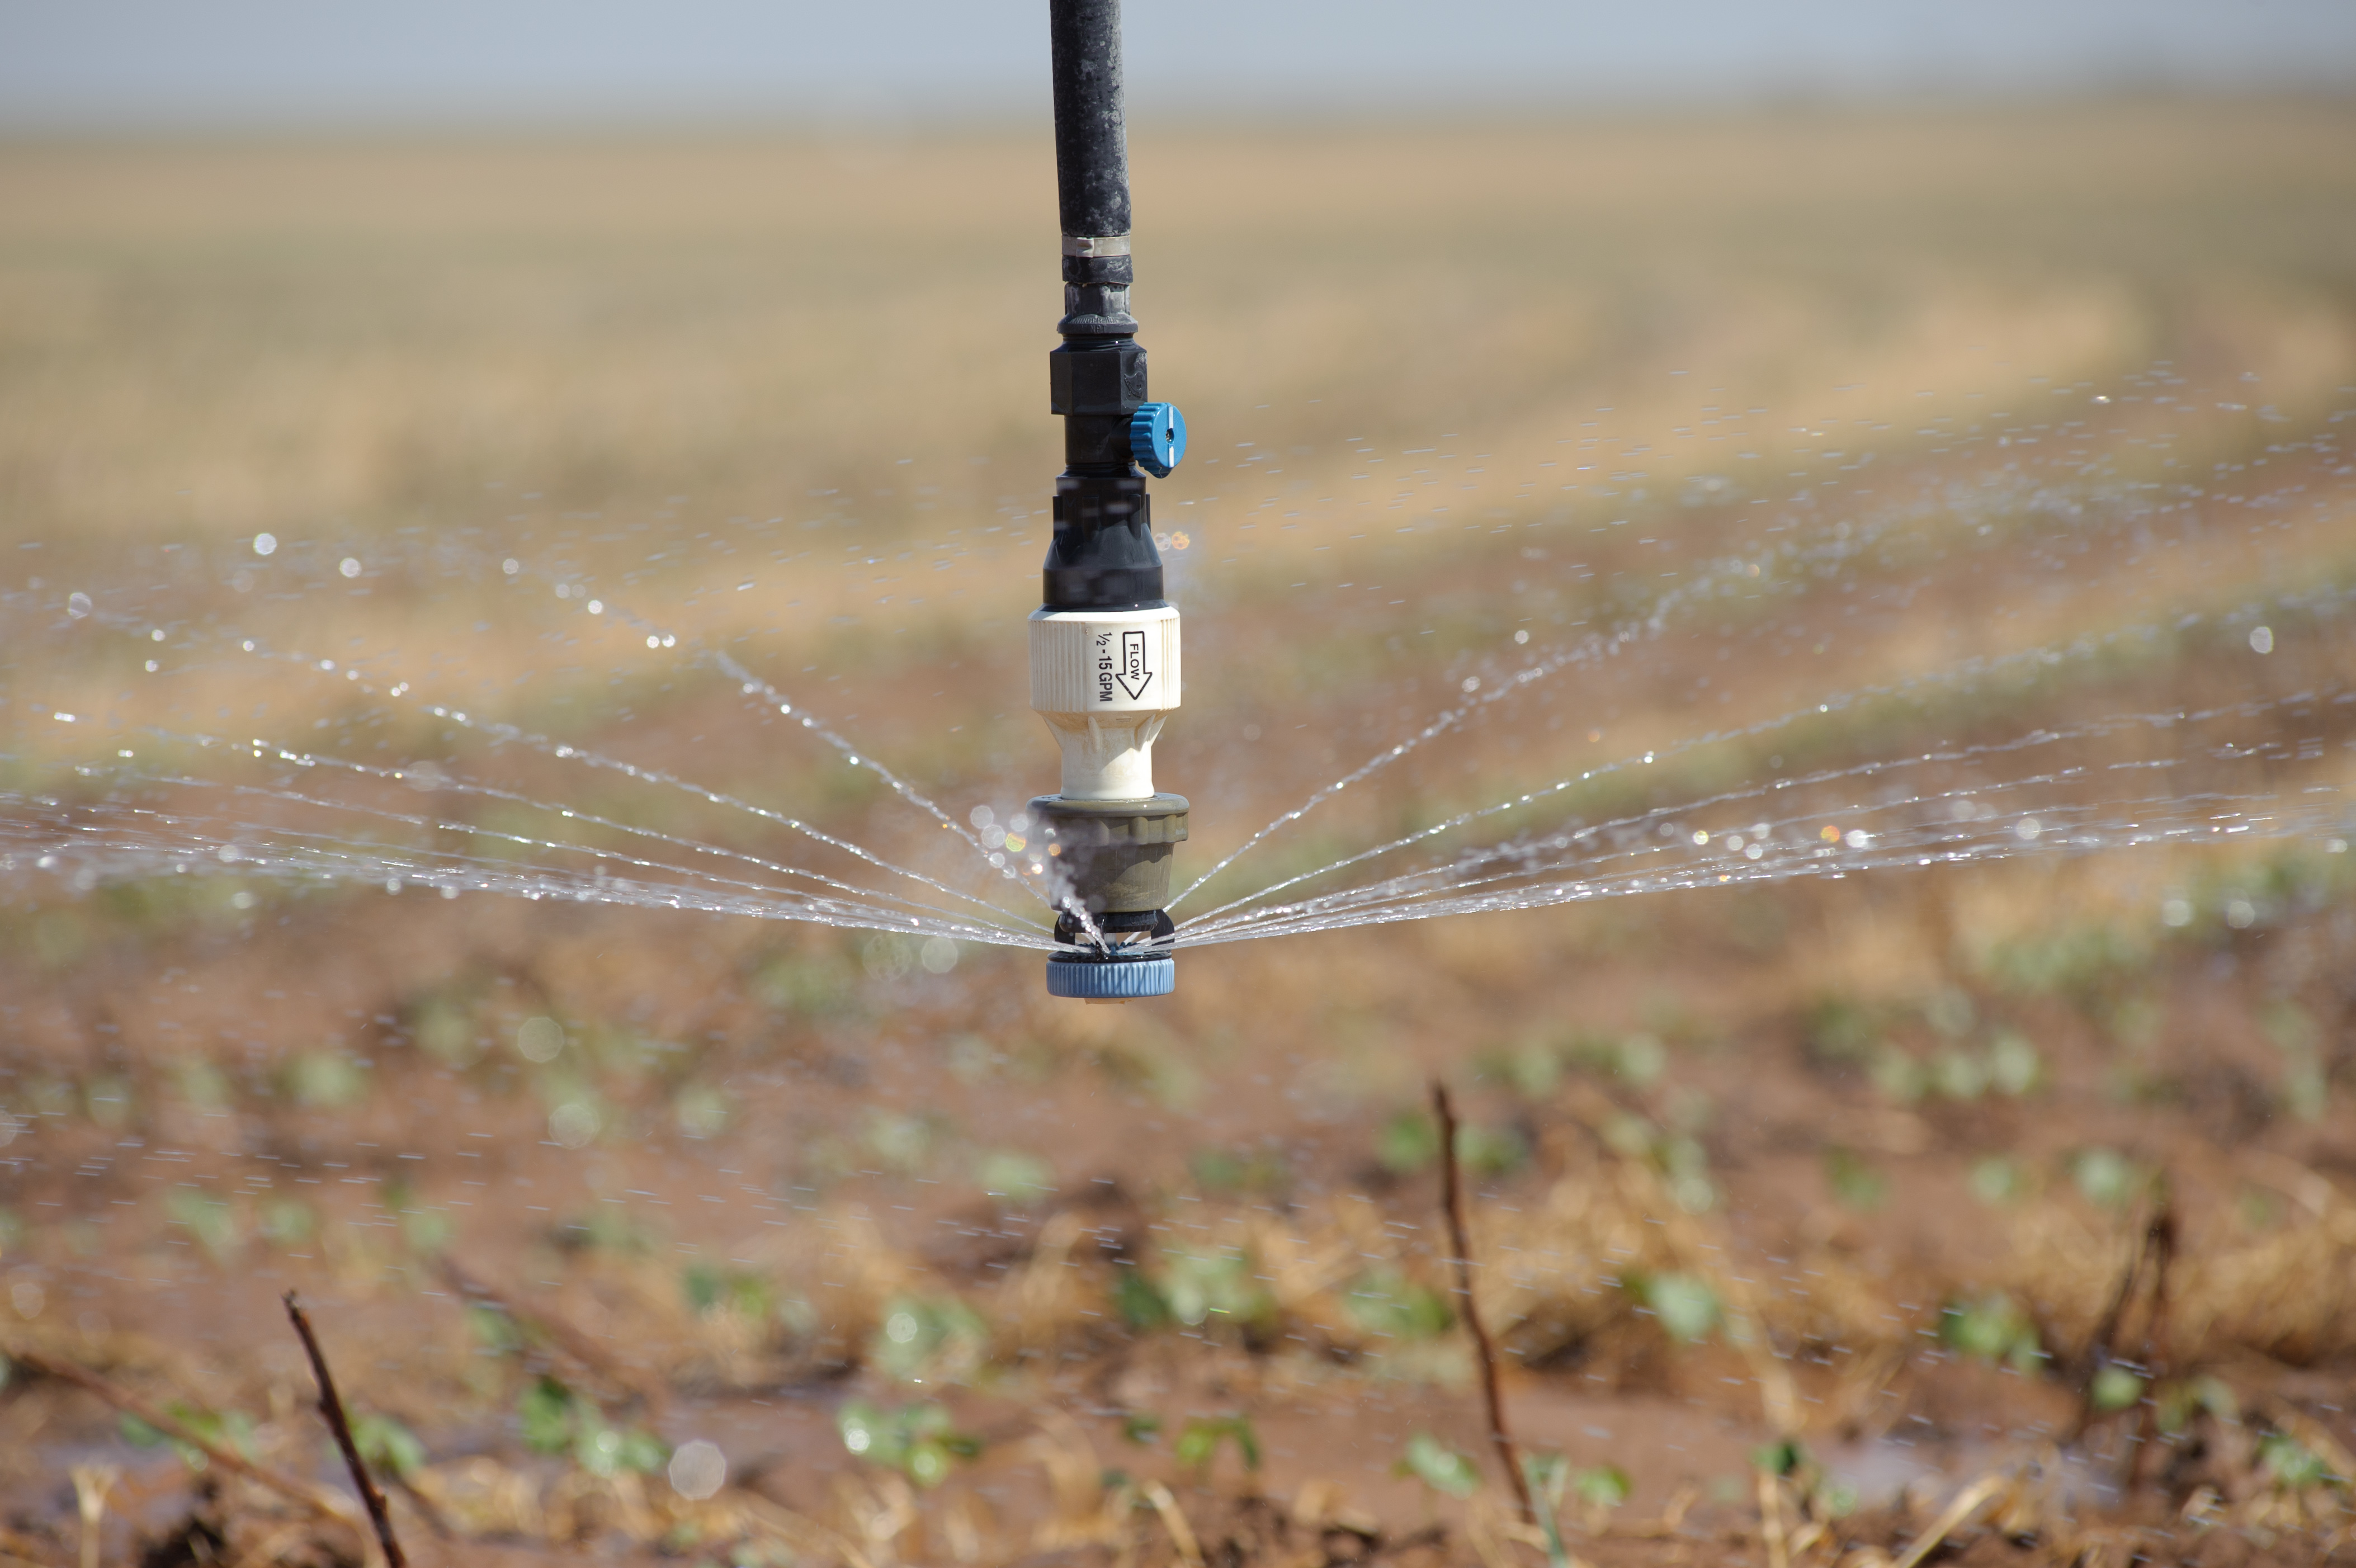 Center_pivot_irrigation_system_drop_nozzles_are_used_efficiently_to_deliver_water_to_cotton_crop._(25117043355)